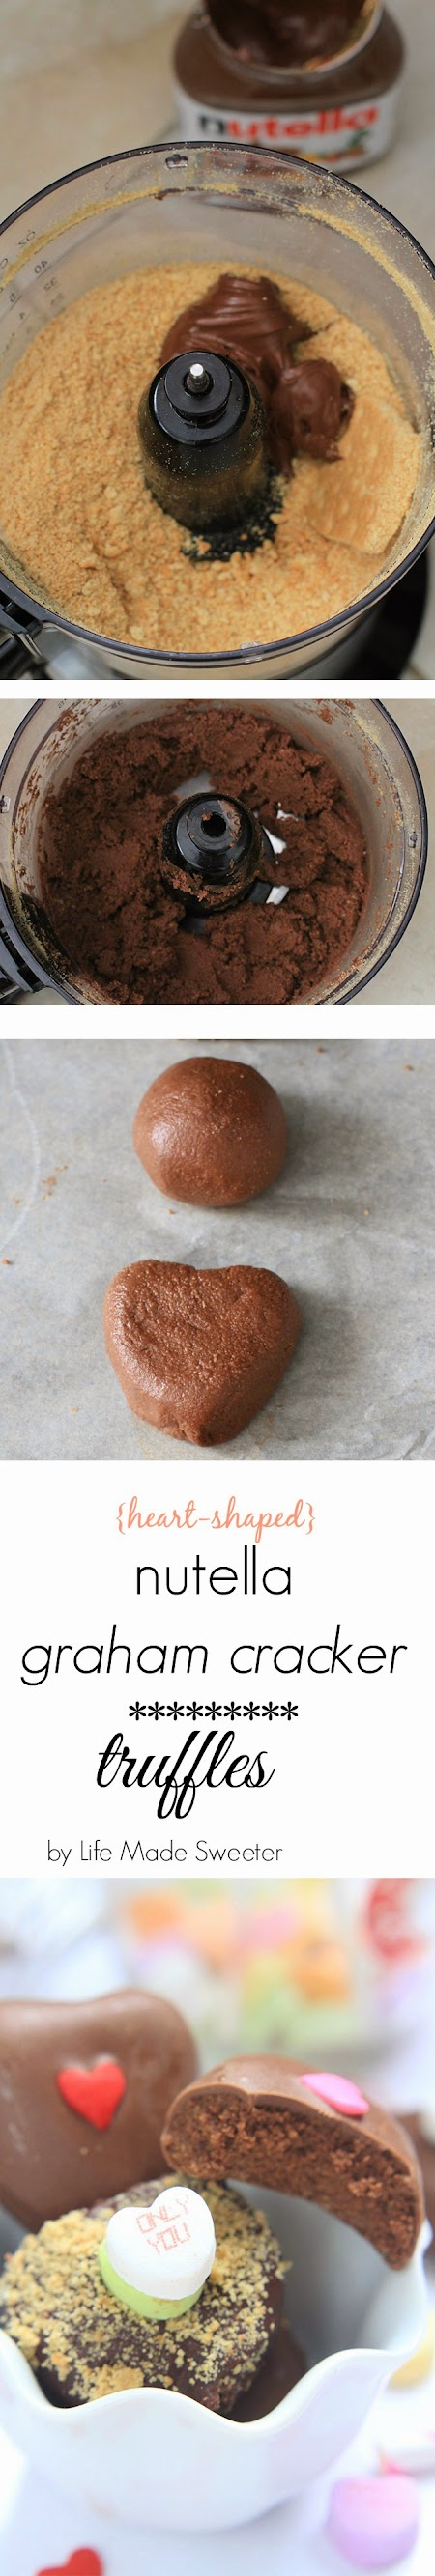 Nutella-Heart-Graham-Cracker-Truffles-from-@LifeMadeSweeter.jpg